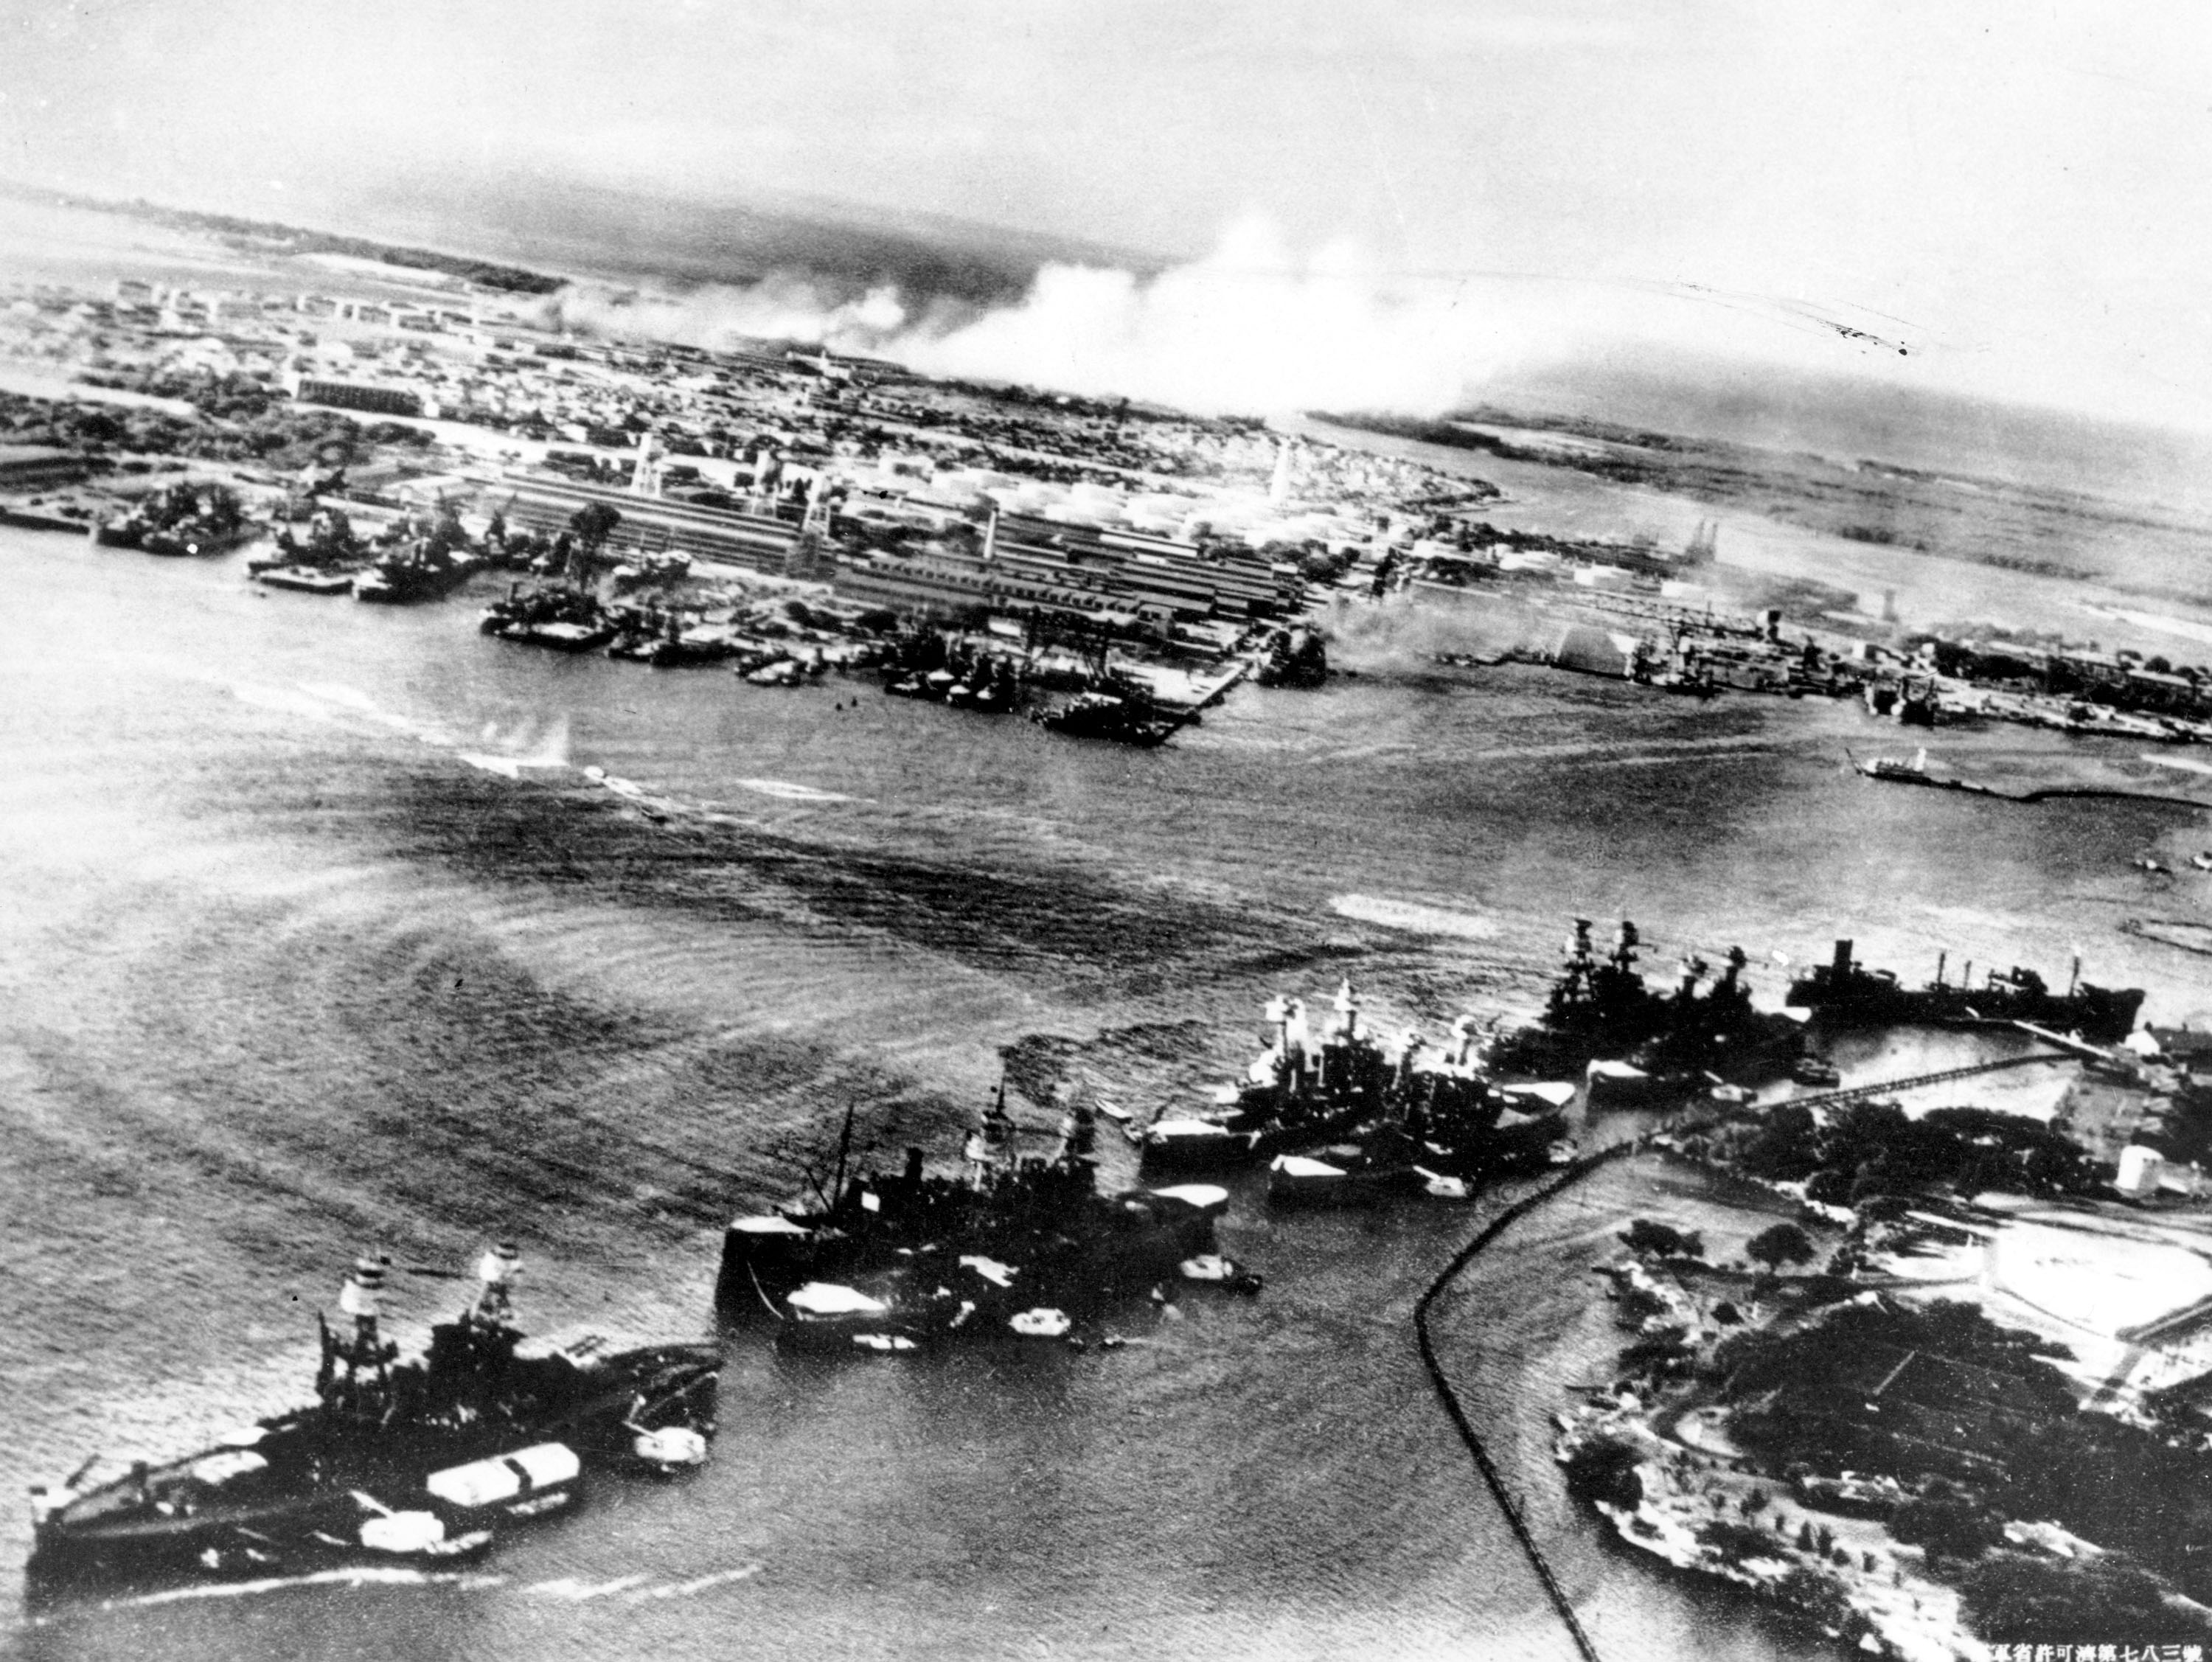 This picture, taken by a Japanese photographer, shows how American ships are clustered together before the surprise Japanese aerial attack on Pear Harbor, HI., on Sunday morning, Dec. 8, 1941. Minutes later the full impact of the assault was felt and Pearl Harbor became a flaming target. (AP Photo)